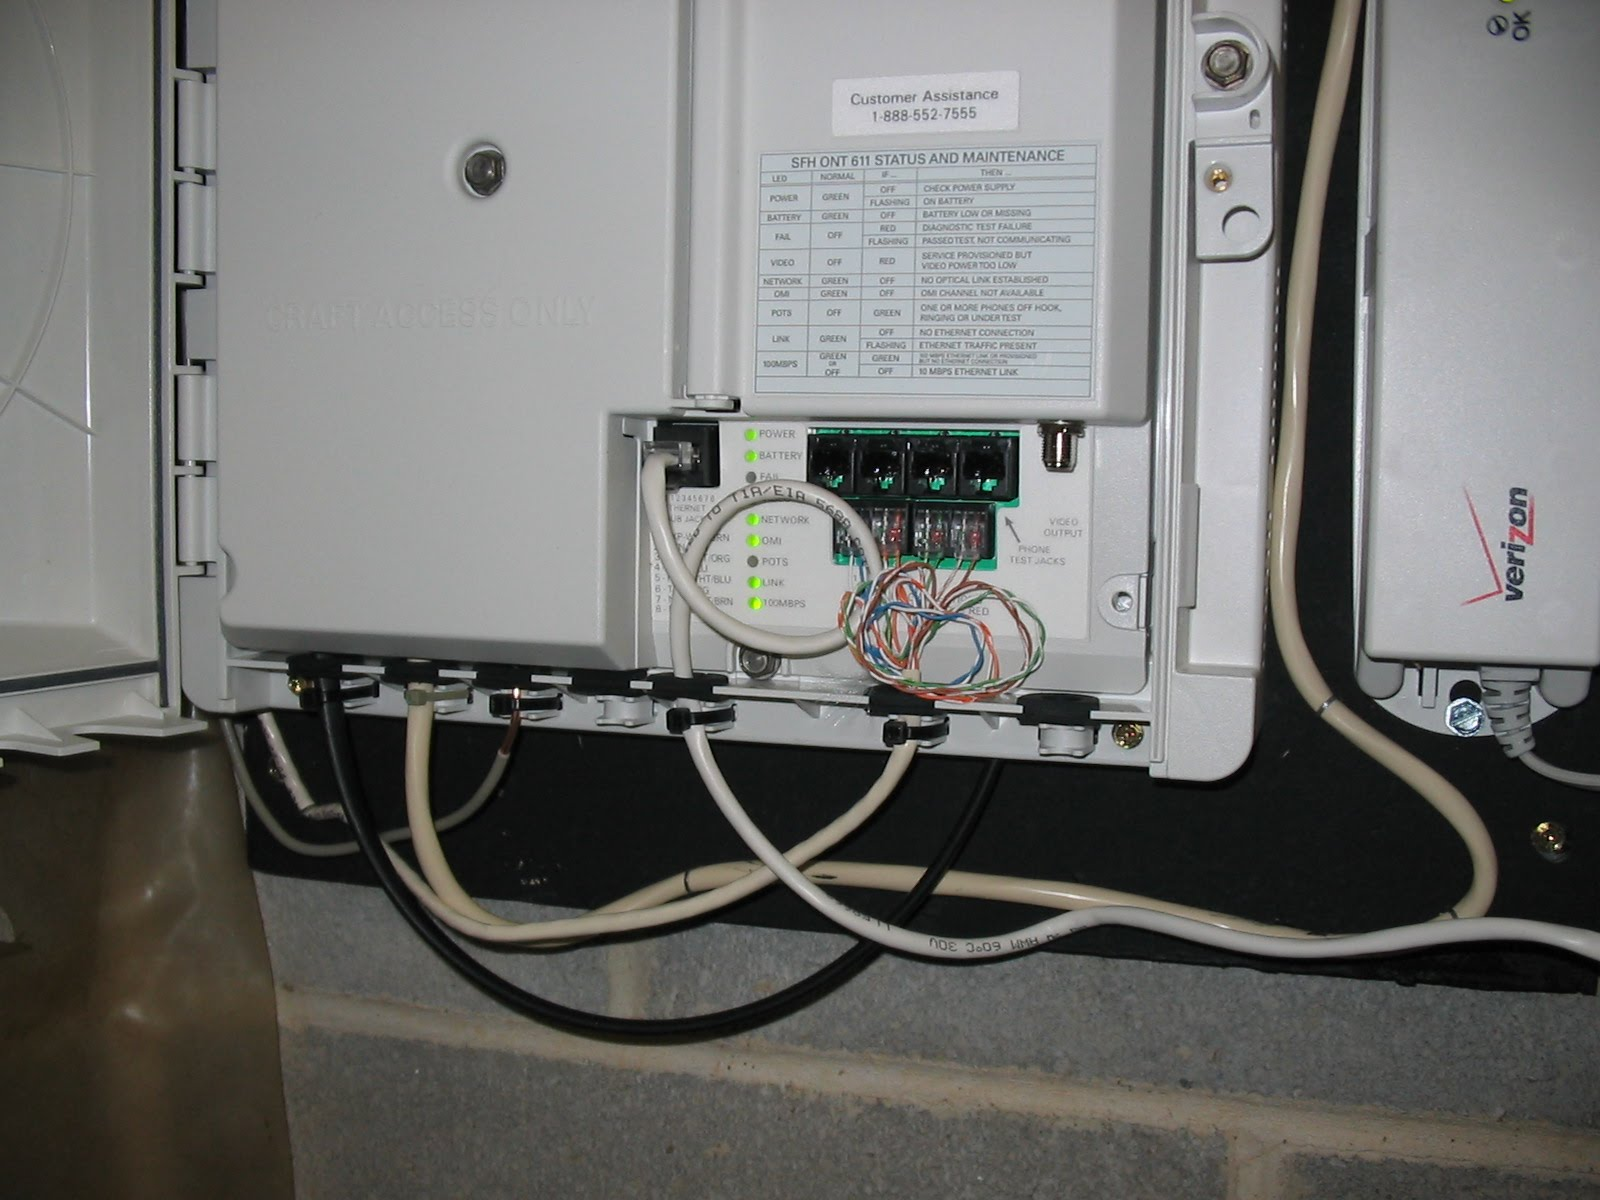 comcast router wiring diagram comcast modem diagram wiring